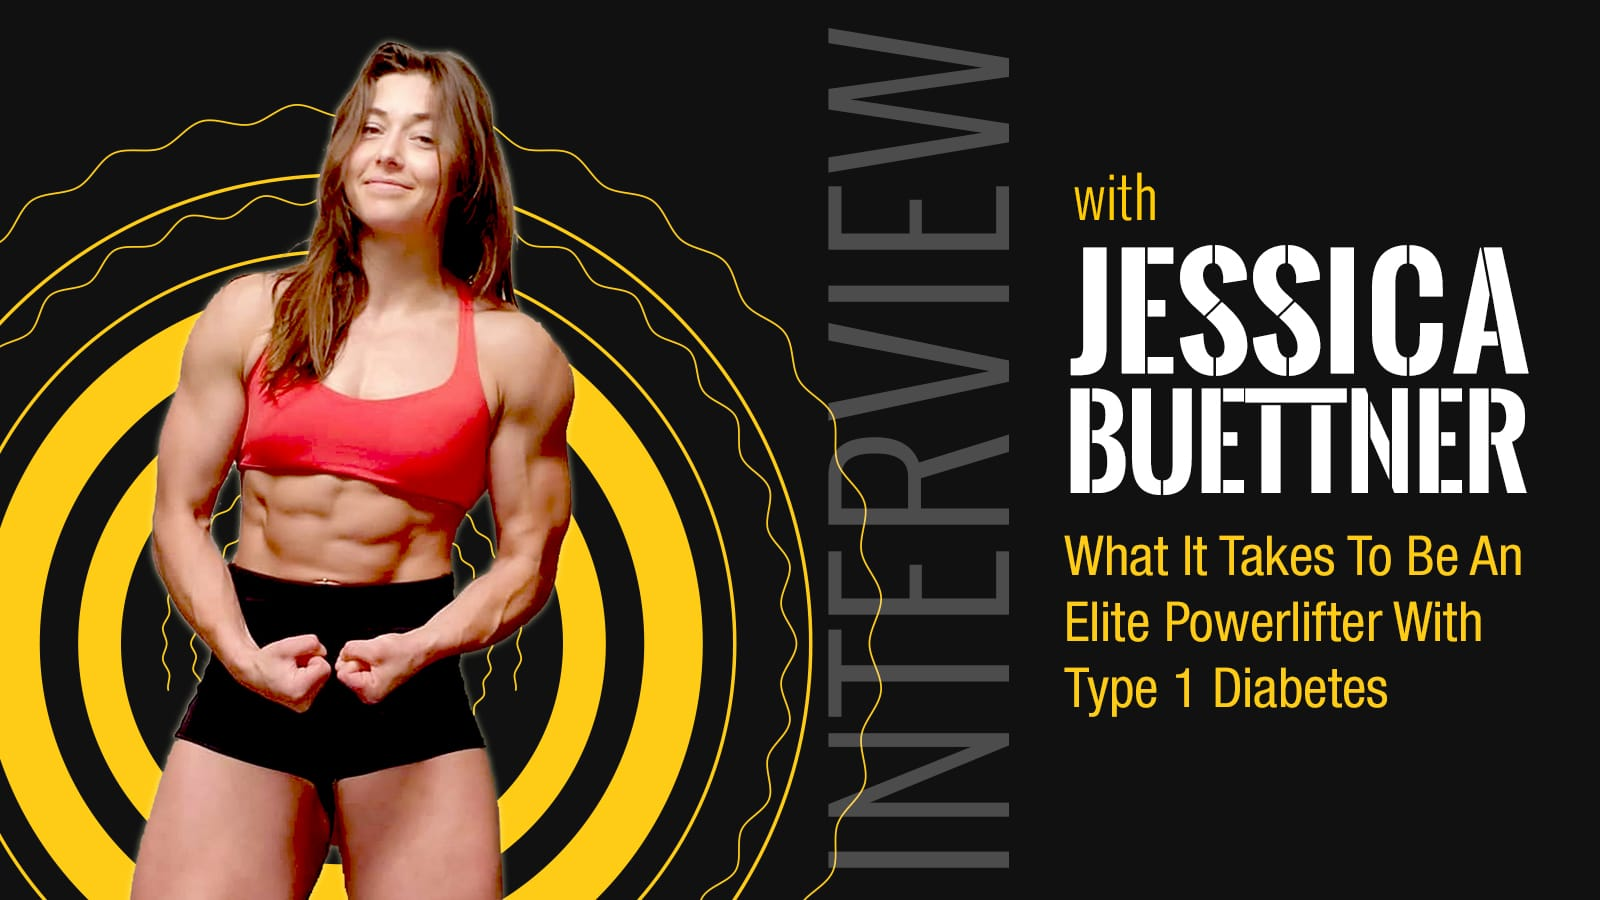 Jessica Buettner Tells What It Takes To Be An Elite Powerlifter With Type 1 Diabetes (Exclusive)